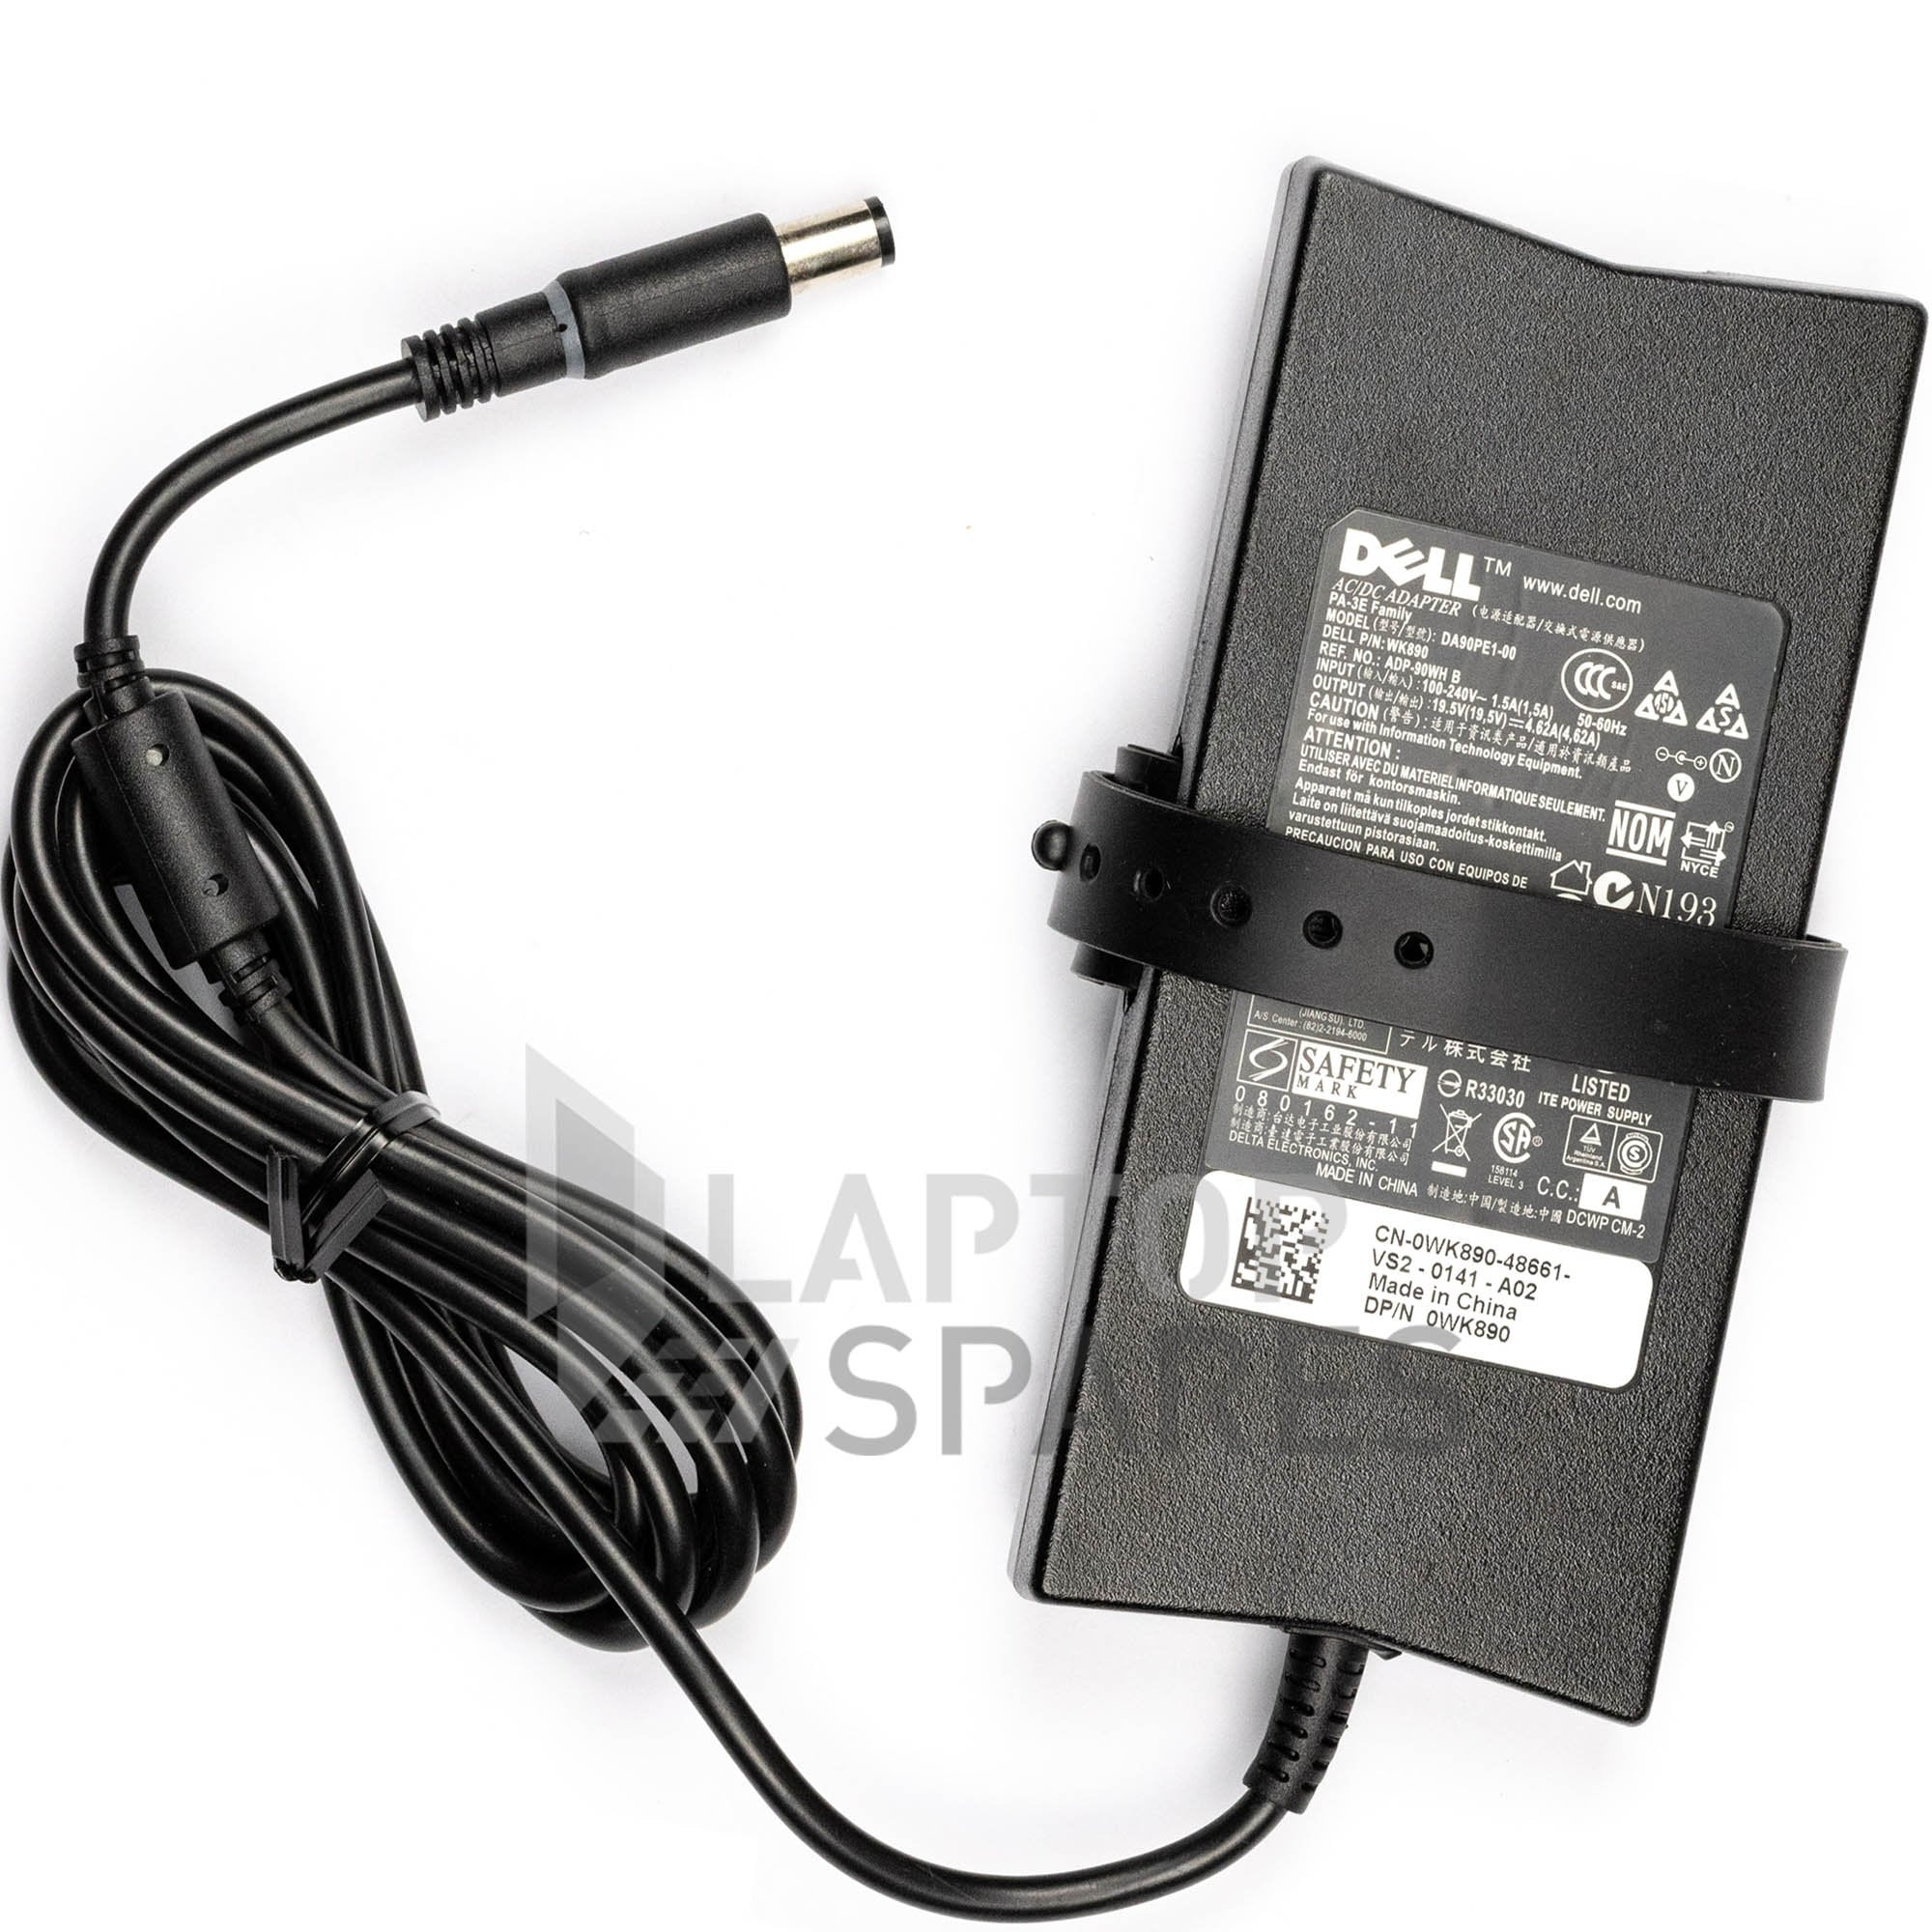 Dell Precision Mobile M60 M65 M70  Laptop Slim AC Adapter Charger